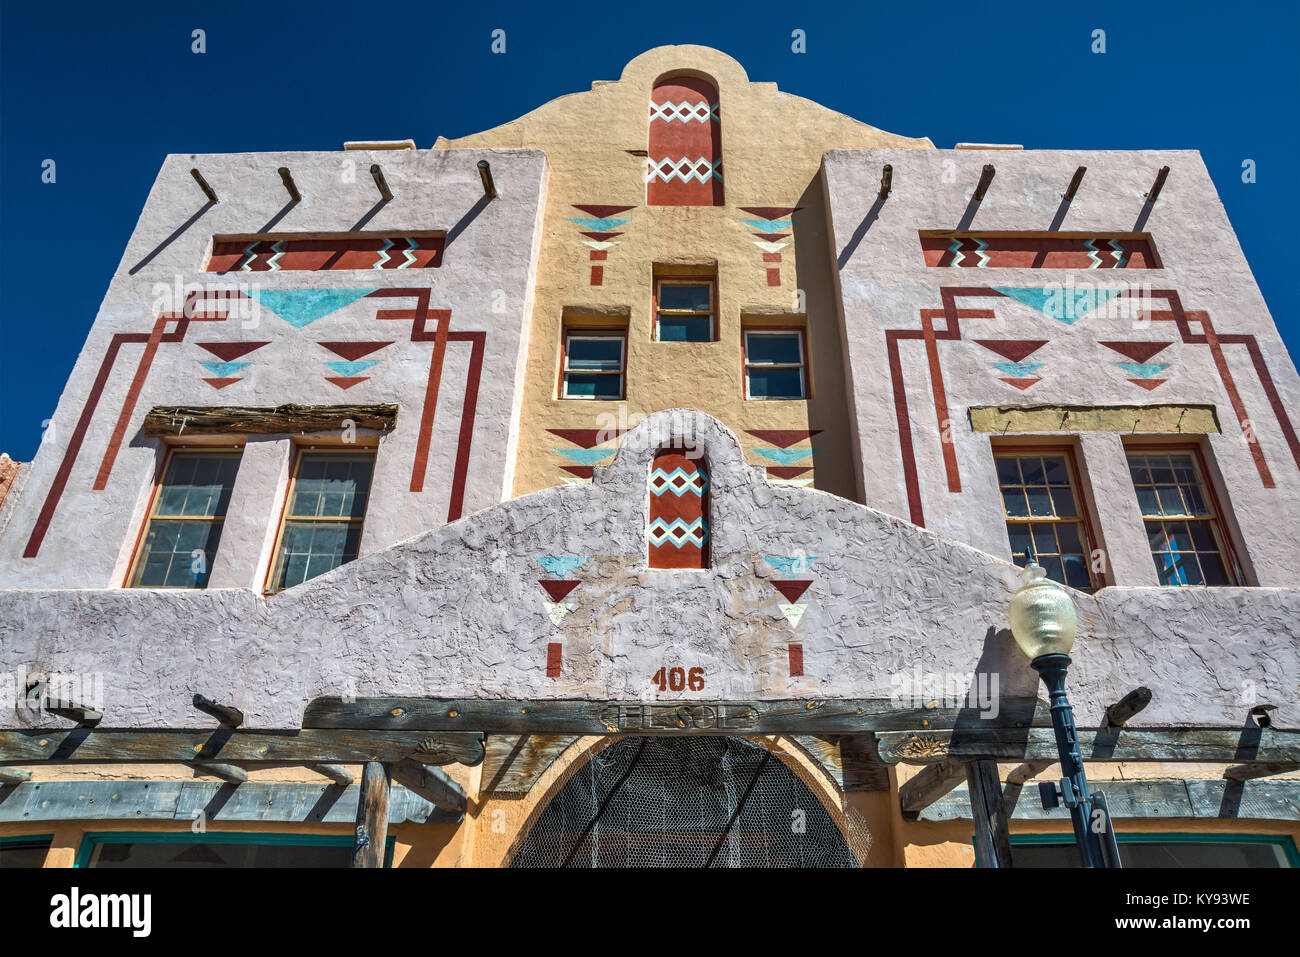 El Sol Theatre, historic cinema building with motifs inspired by Indian designs at Bullard Street in Silver City, - Stock Image